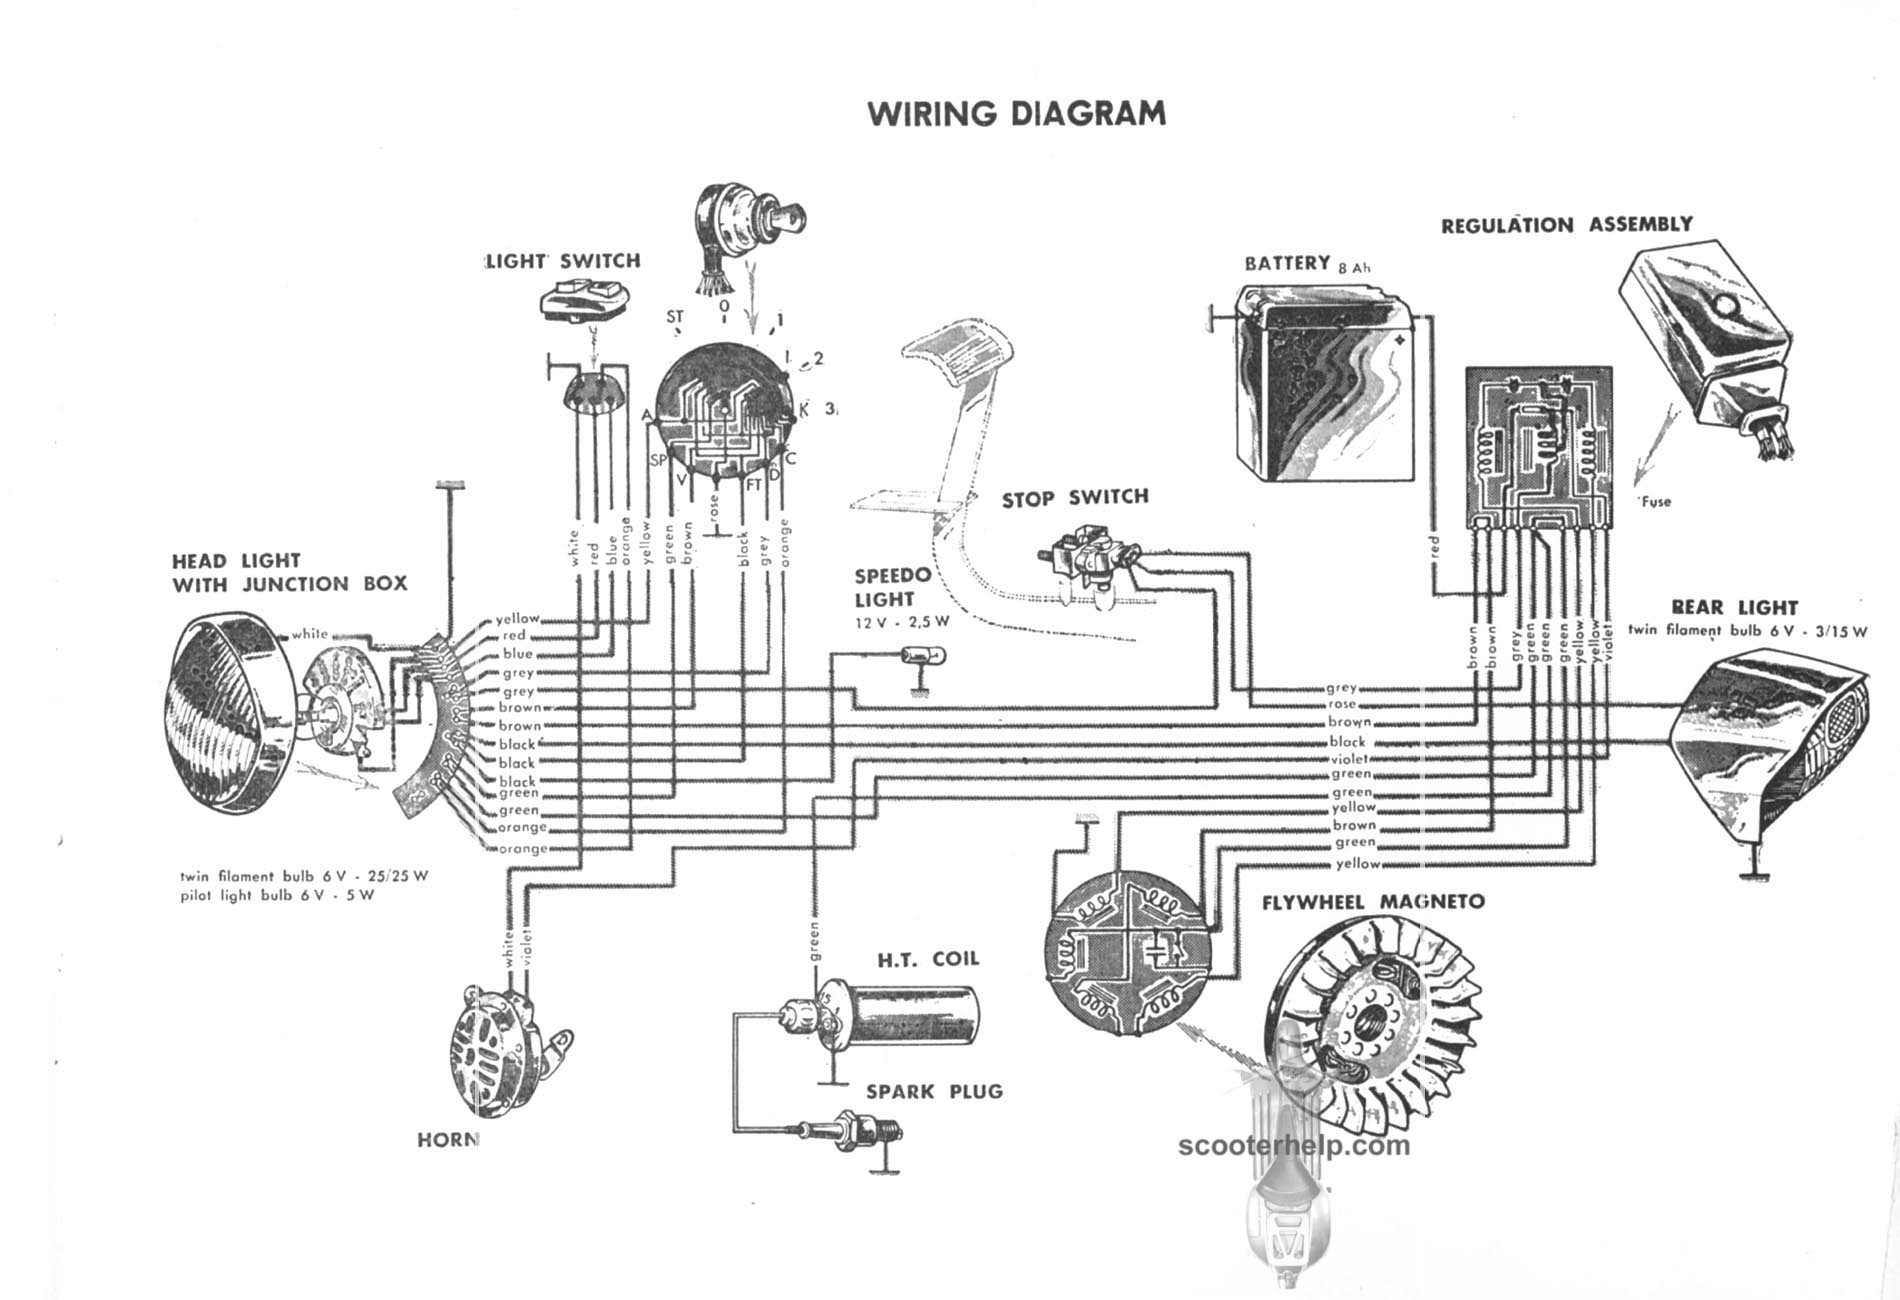 hight resolution of lambretta scooter wiring diagram 100 wiring diagram review lambretta bgm wiring diagram lambretta wiring diagram